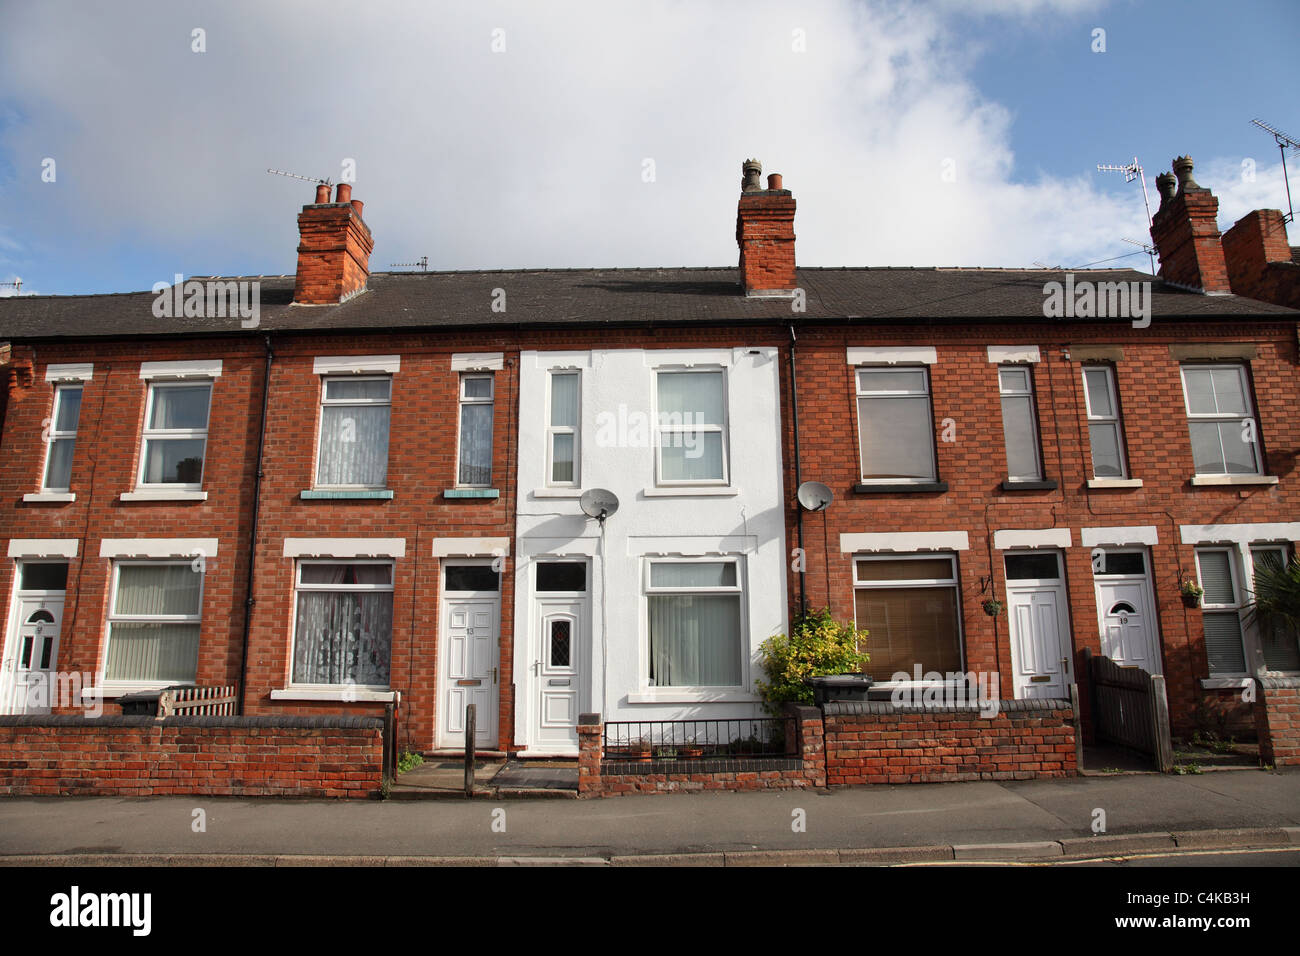 Terraced houses in arnold nottingham england u k stock for The terrace land and house